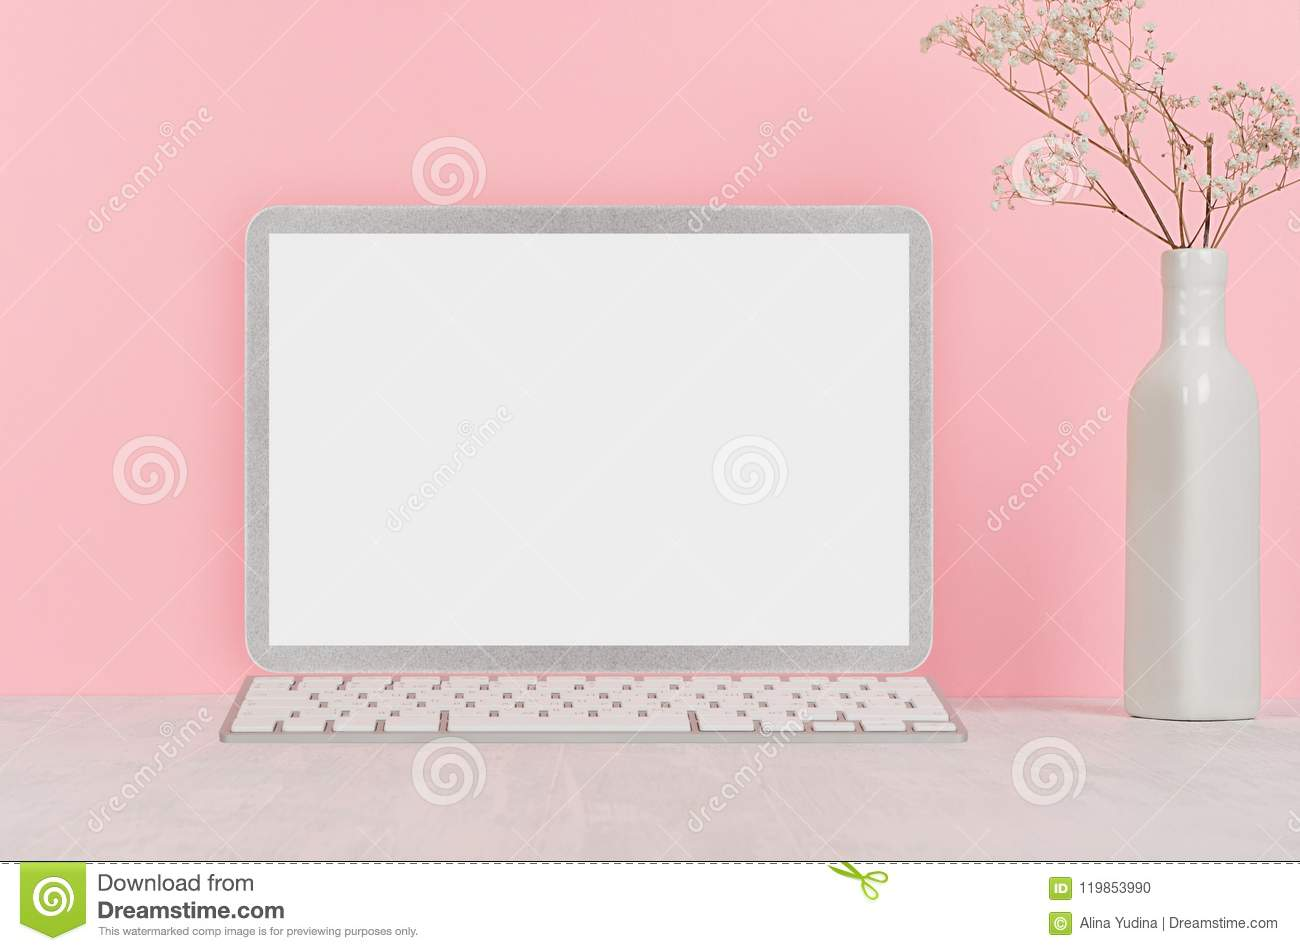 Modern fashion workplace - silver laptop with blank screen, white stationery on soft pink background.